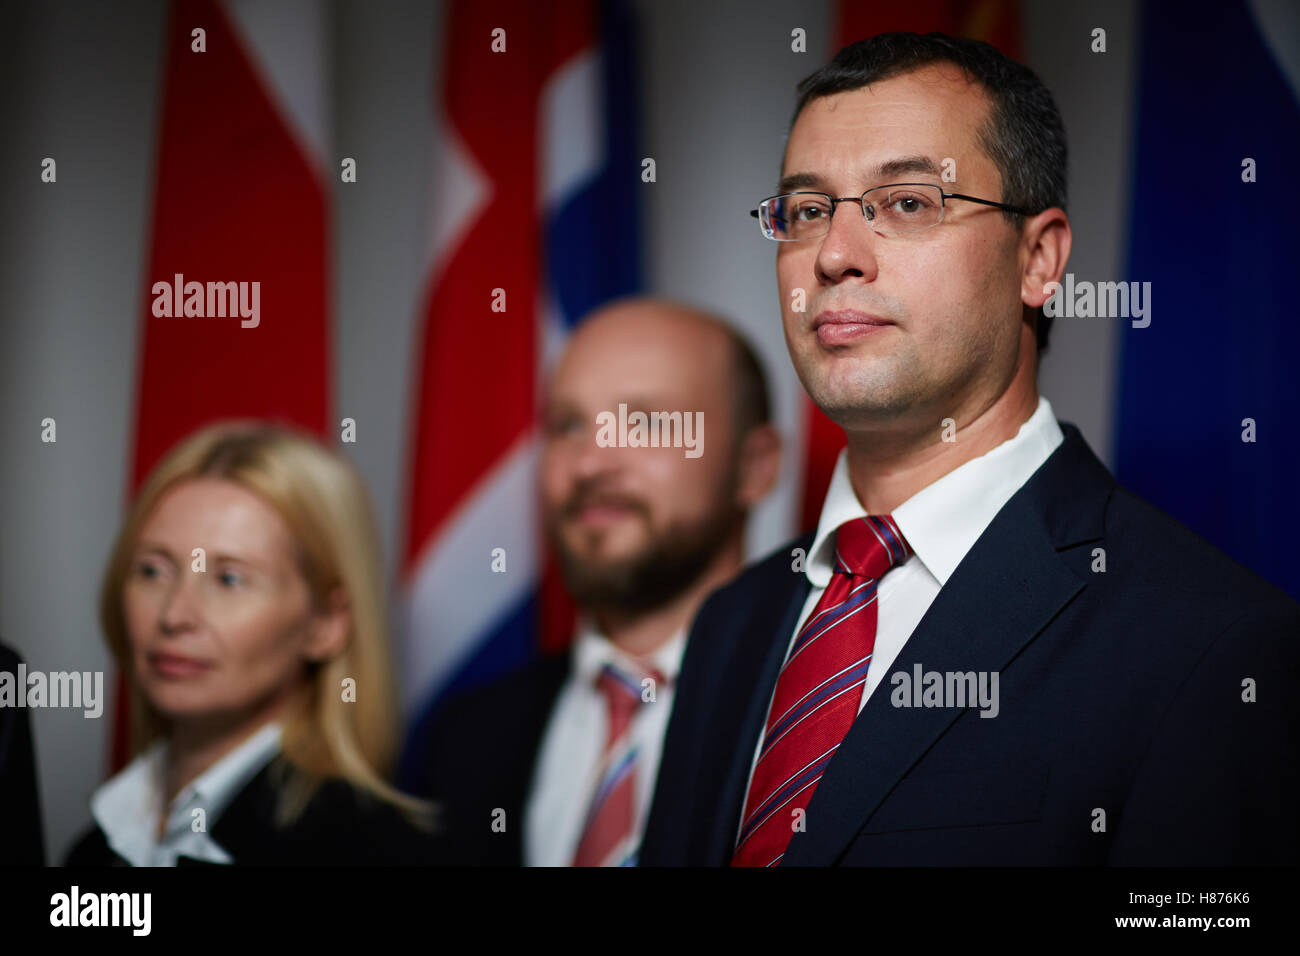 Confident good-looking politician - Stock Image